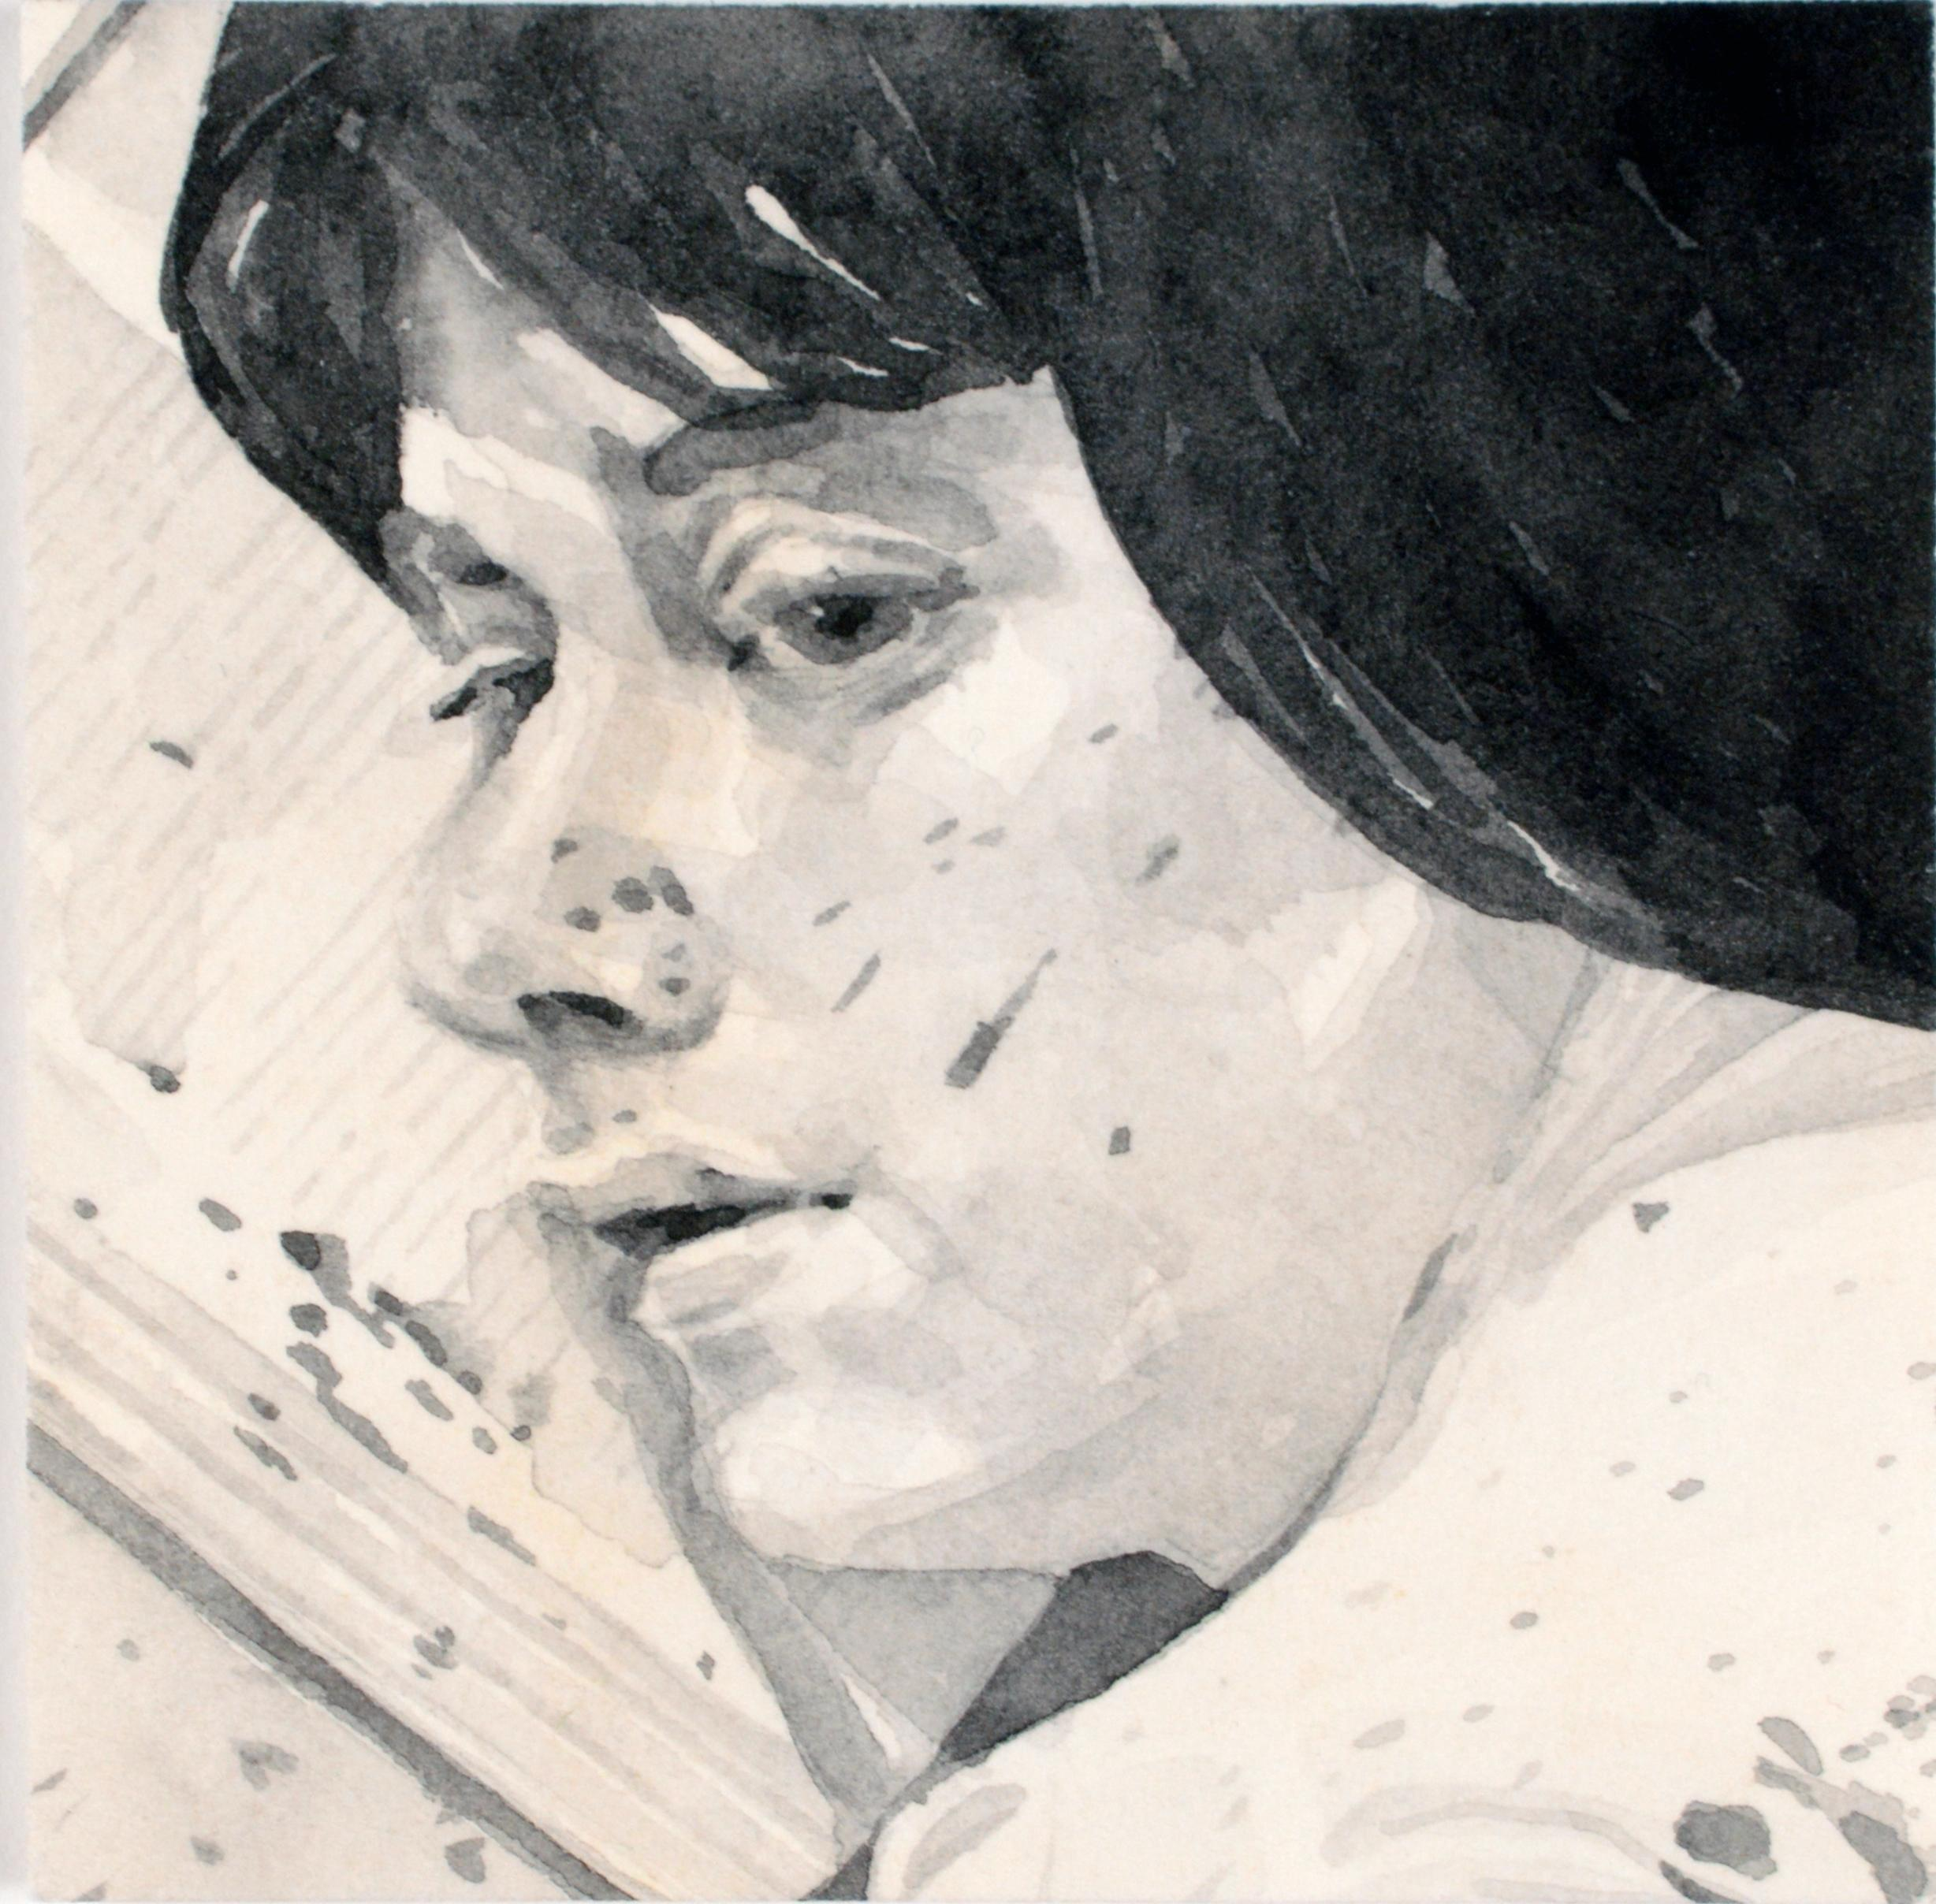 <p>Samantha Scherer. <em>06-117</em>. 2009-10. Watercolor on stained paper. Henry Art Gallery, purchased with funds from the Ambrose M. and Viola H. Patterson Endowment Fund, 2016.12.19. © Samantha Scherer. </p>